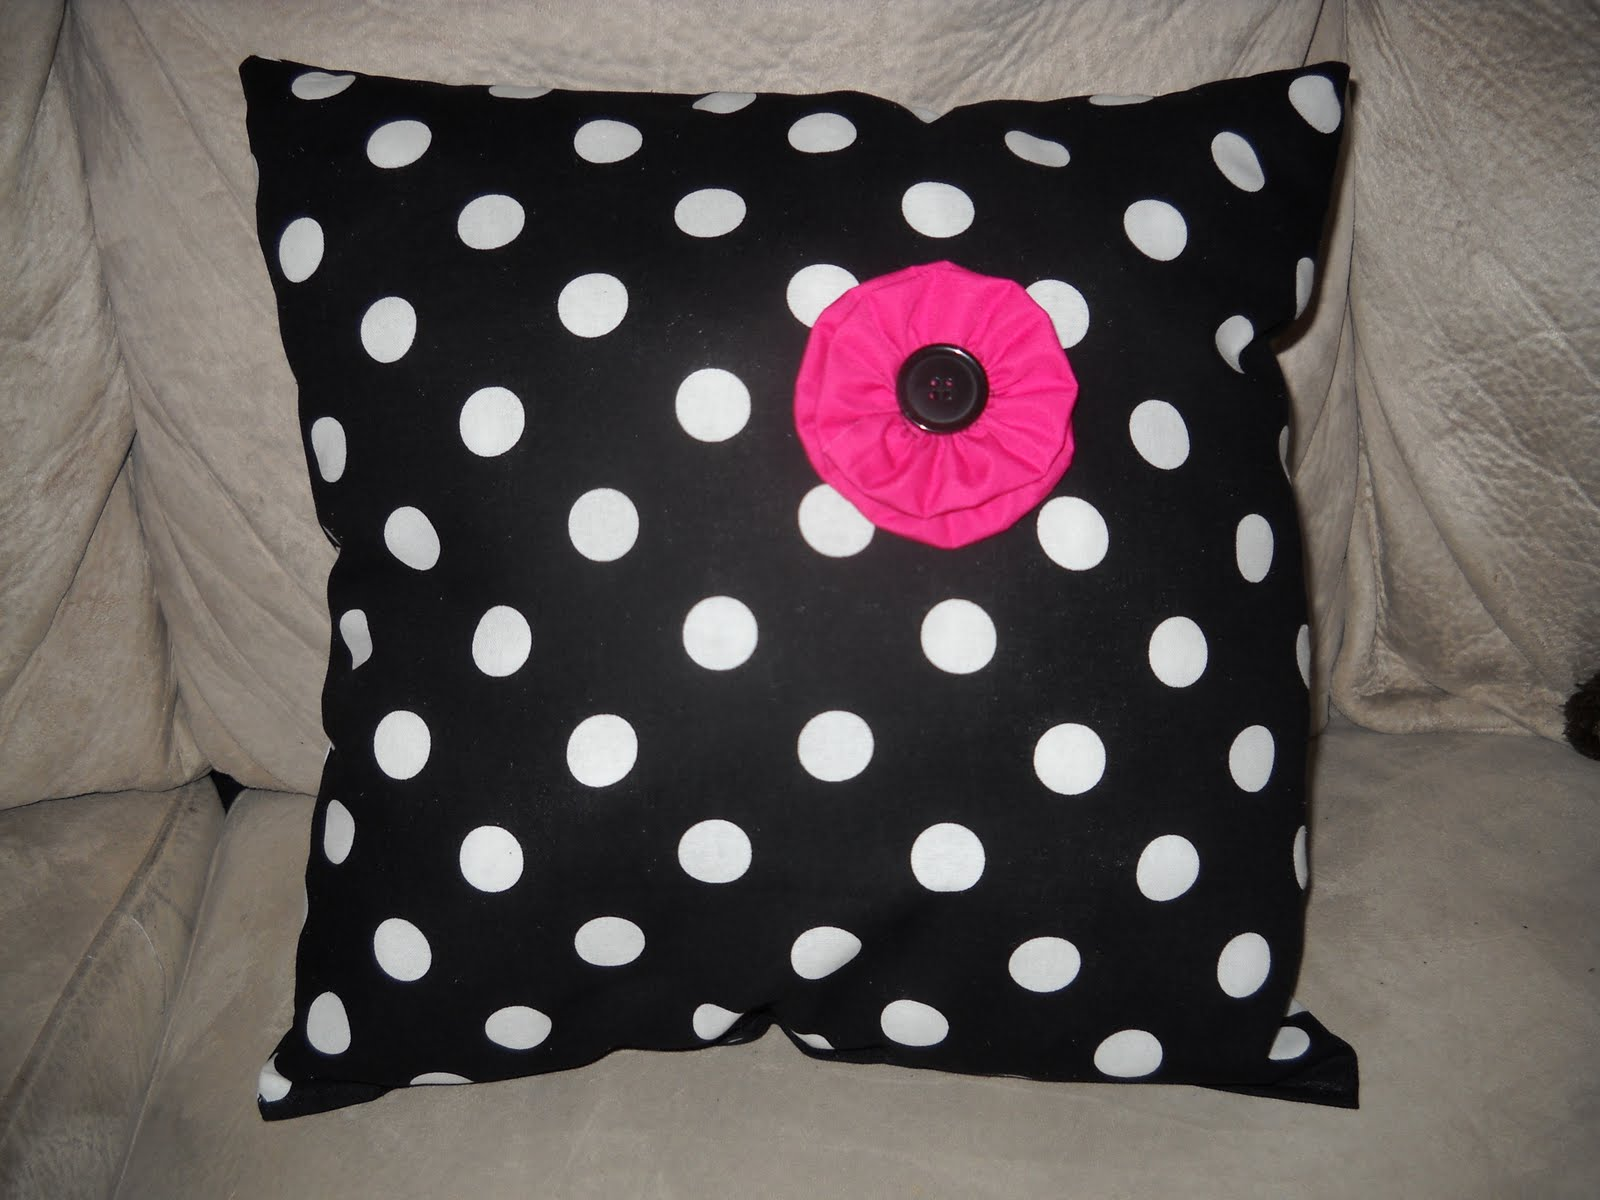 Throw Pillow Makeover : So I Saw This Tutorial ...: Teen Room Redo Part 2: Easy Throw Pillow Makeover